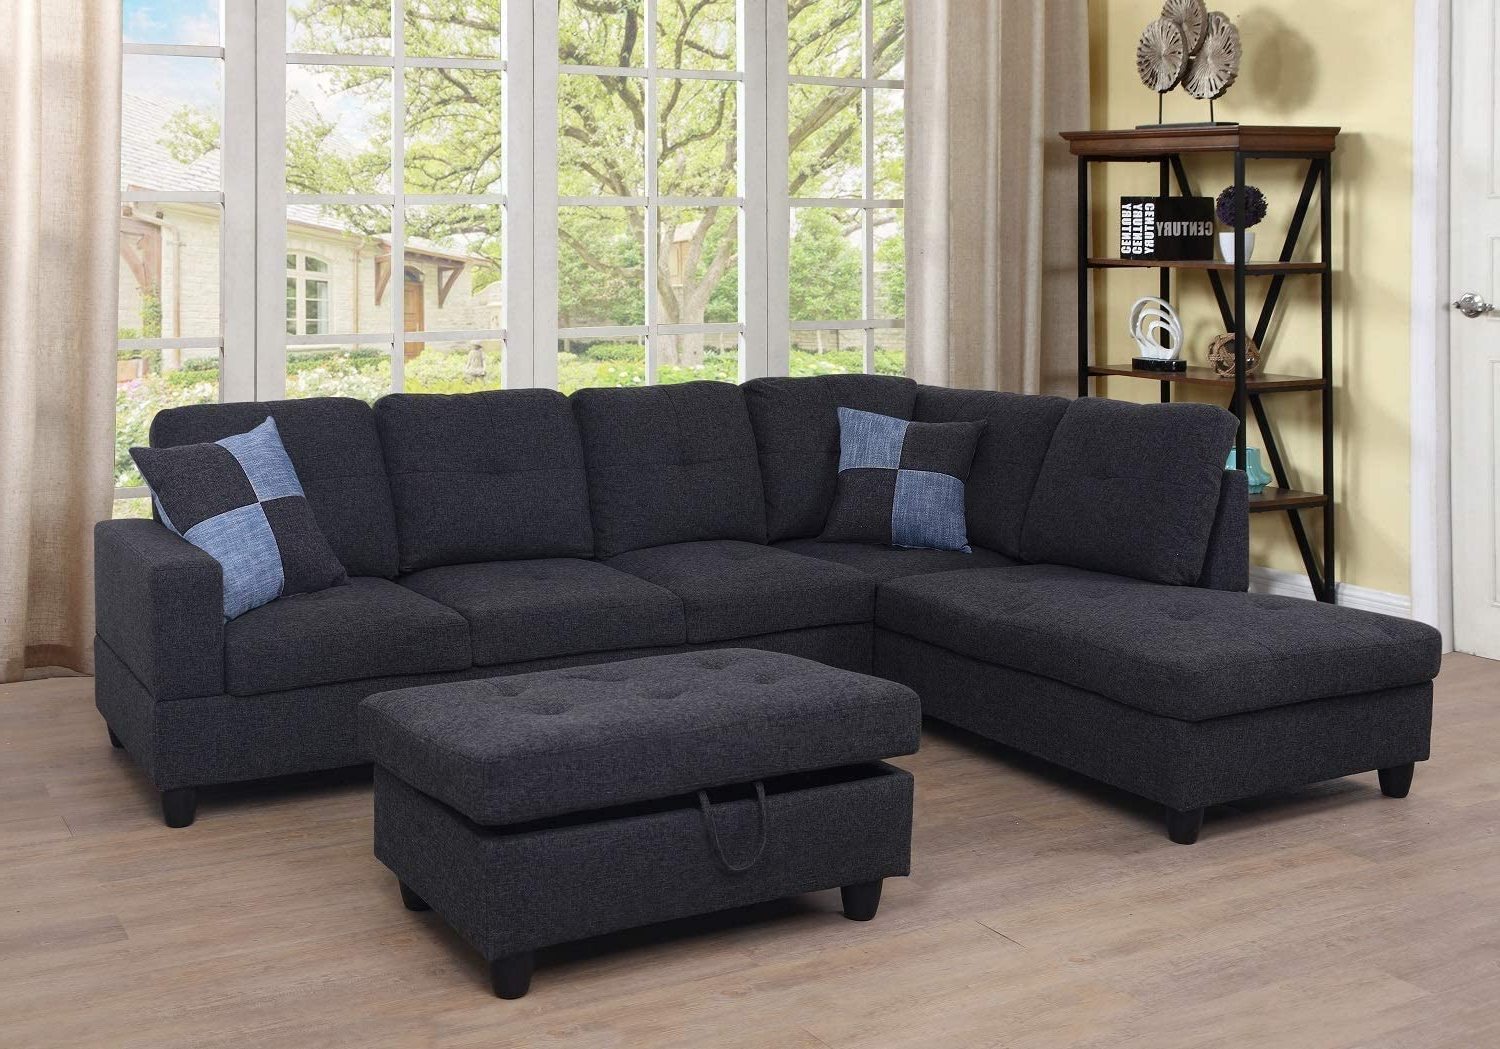 Ponliving Furniture 3-Pcpiece Sectional Sofa Couch Set, L regarding Trendy Hannah Right Sectional Sofas